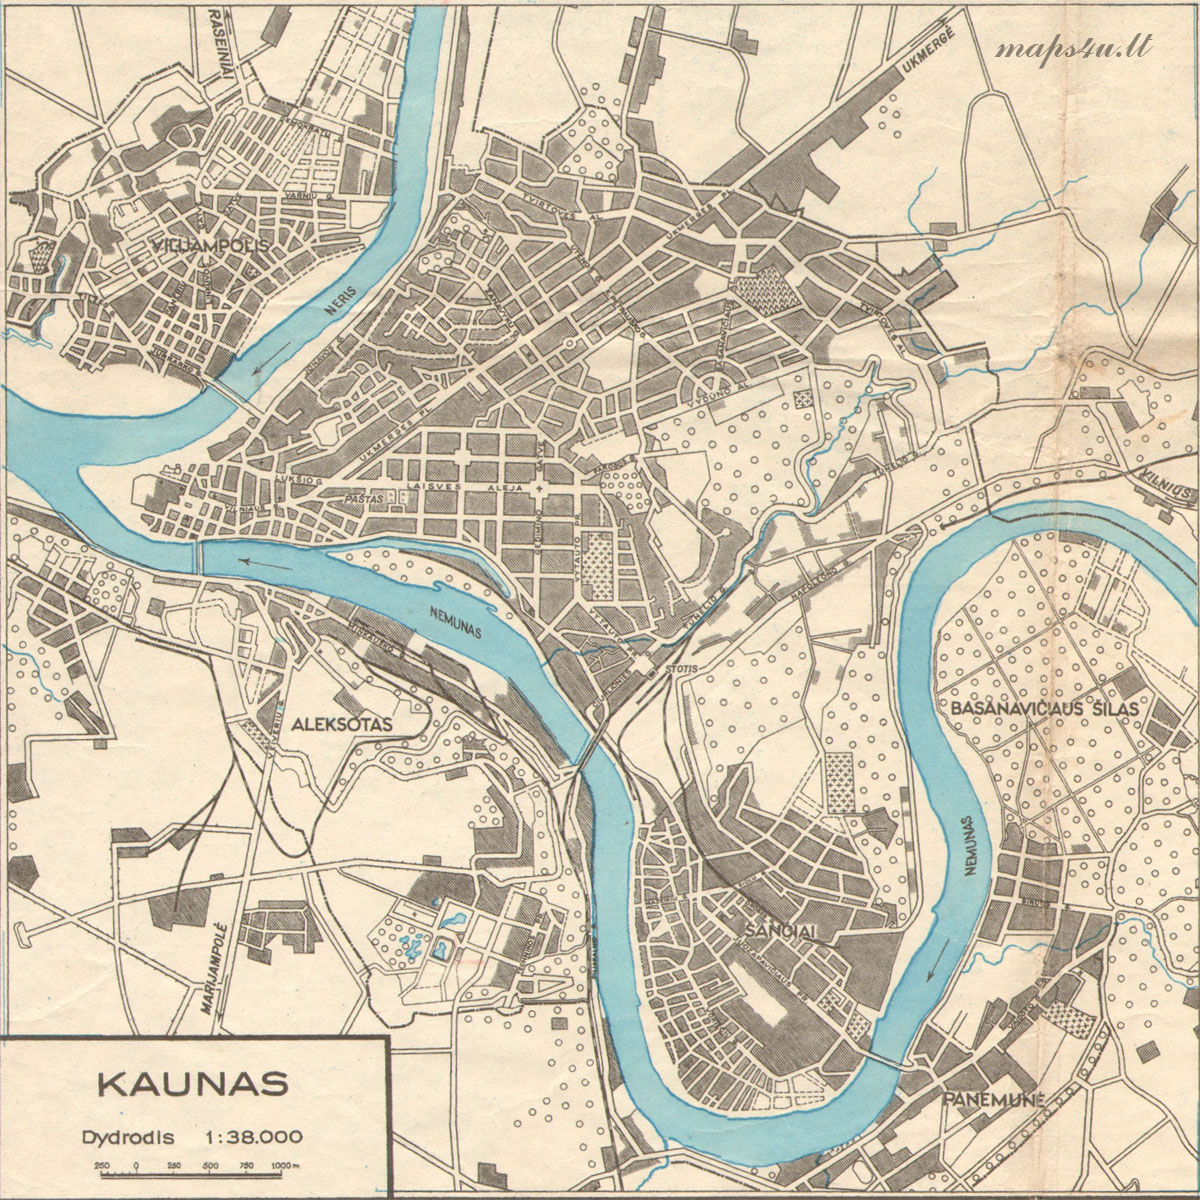 MAPSUlt Maps In History And History In Maps - Kaunas map